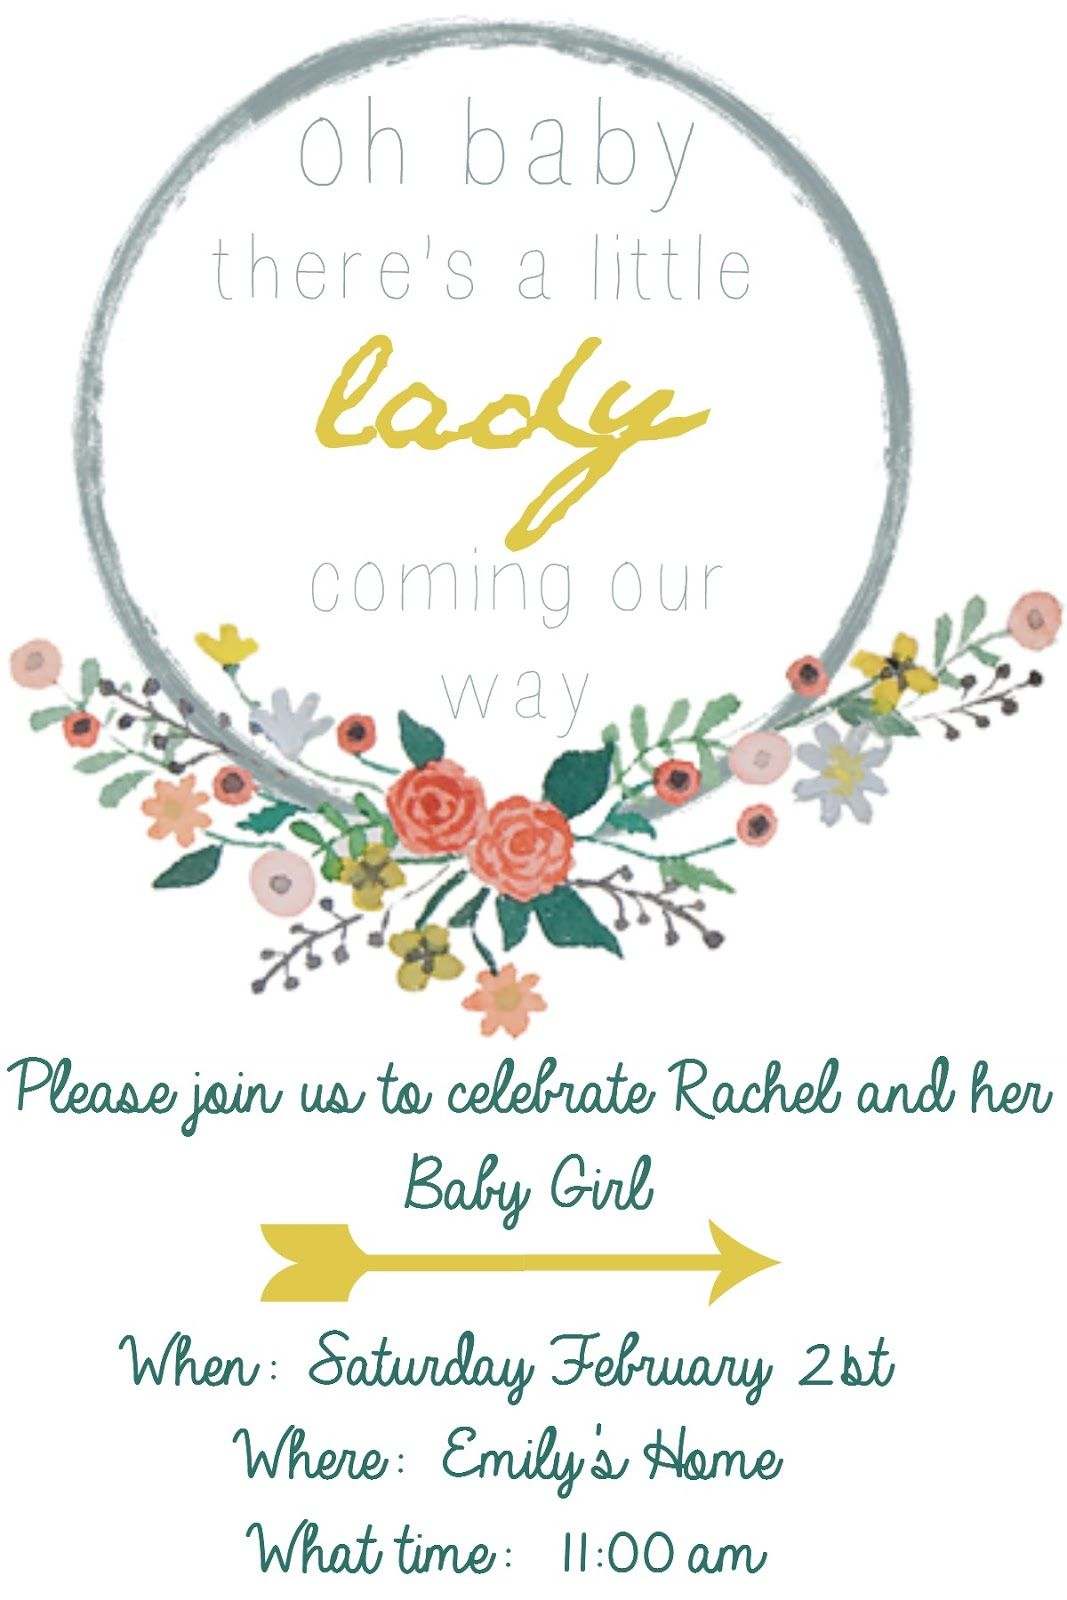 Free Baby shower invitation template and floral wreath clip art.